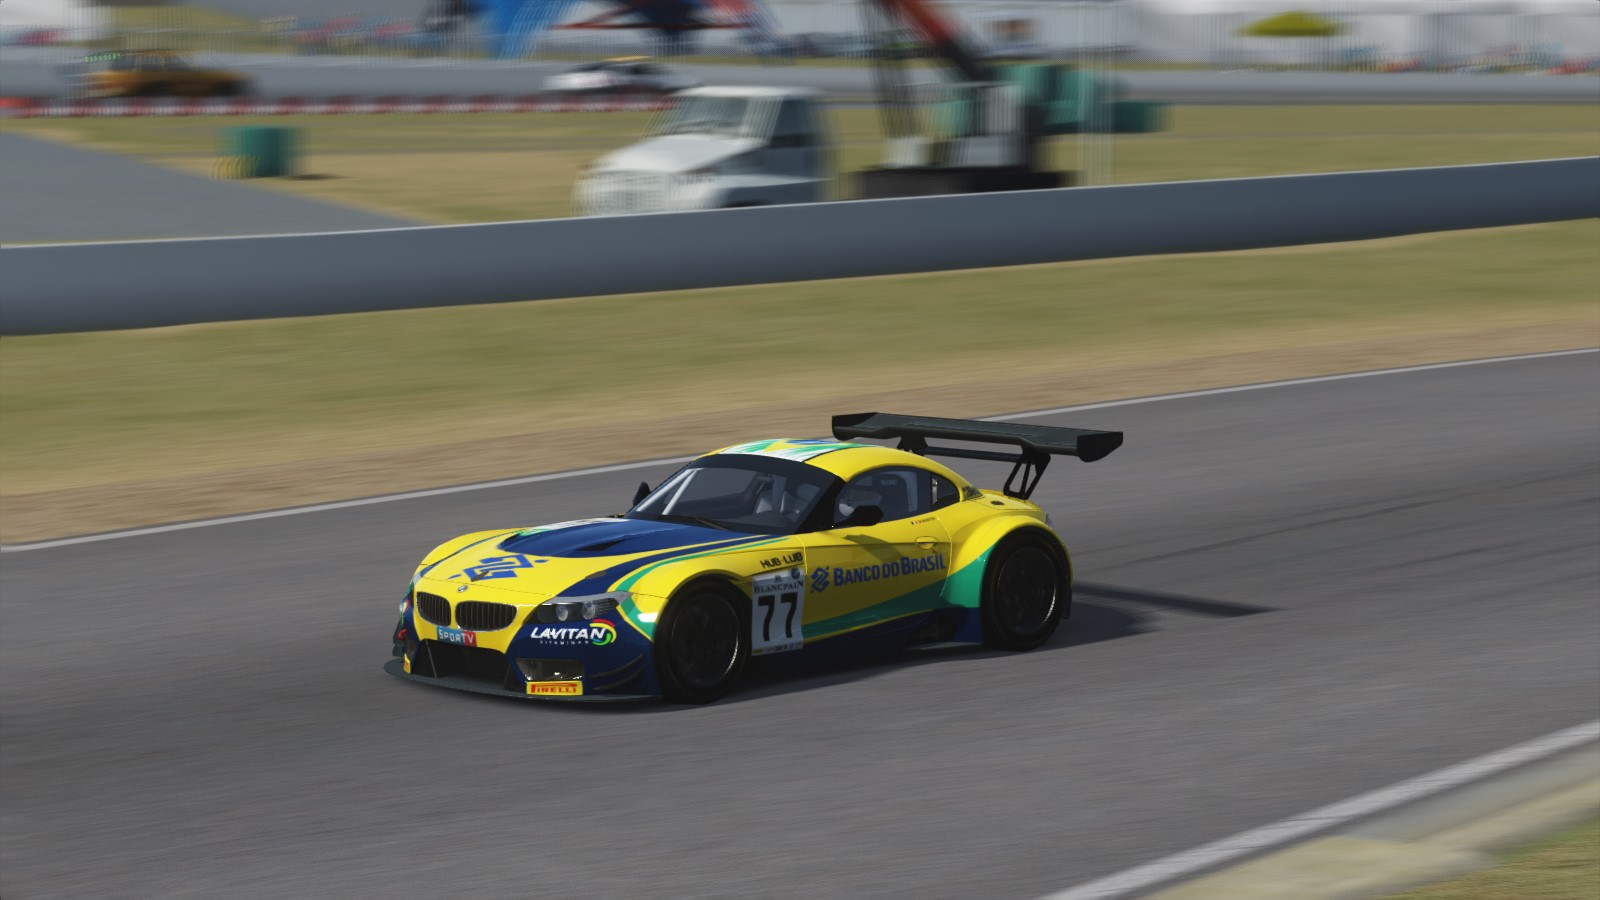 Screenshot_bmw_z4_gt3_barbagallo_12-4-115-2-45-5.jpg